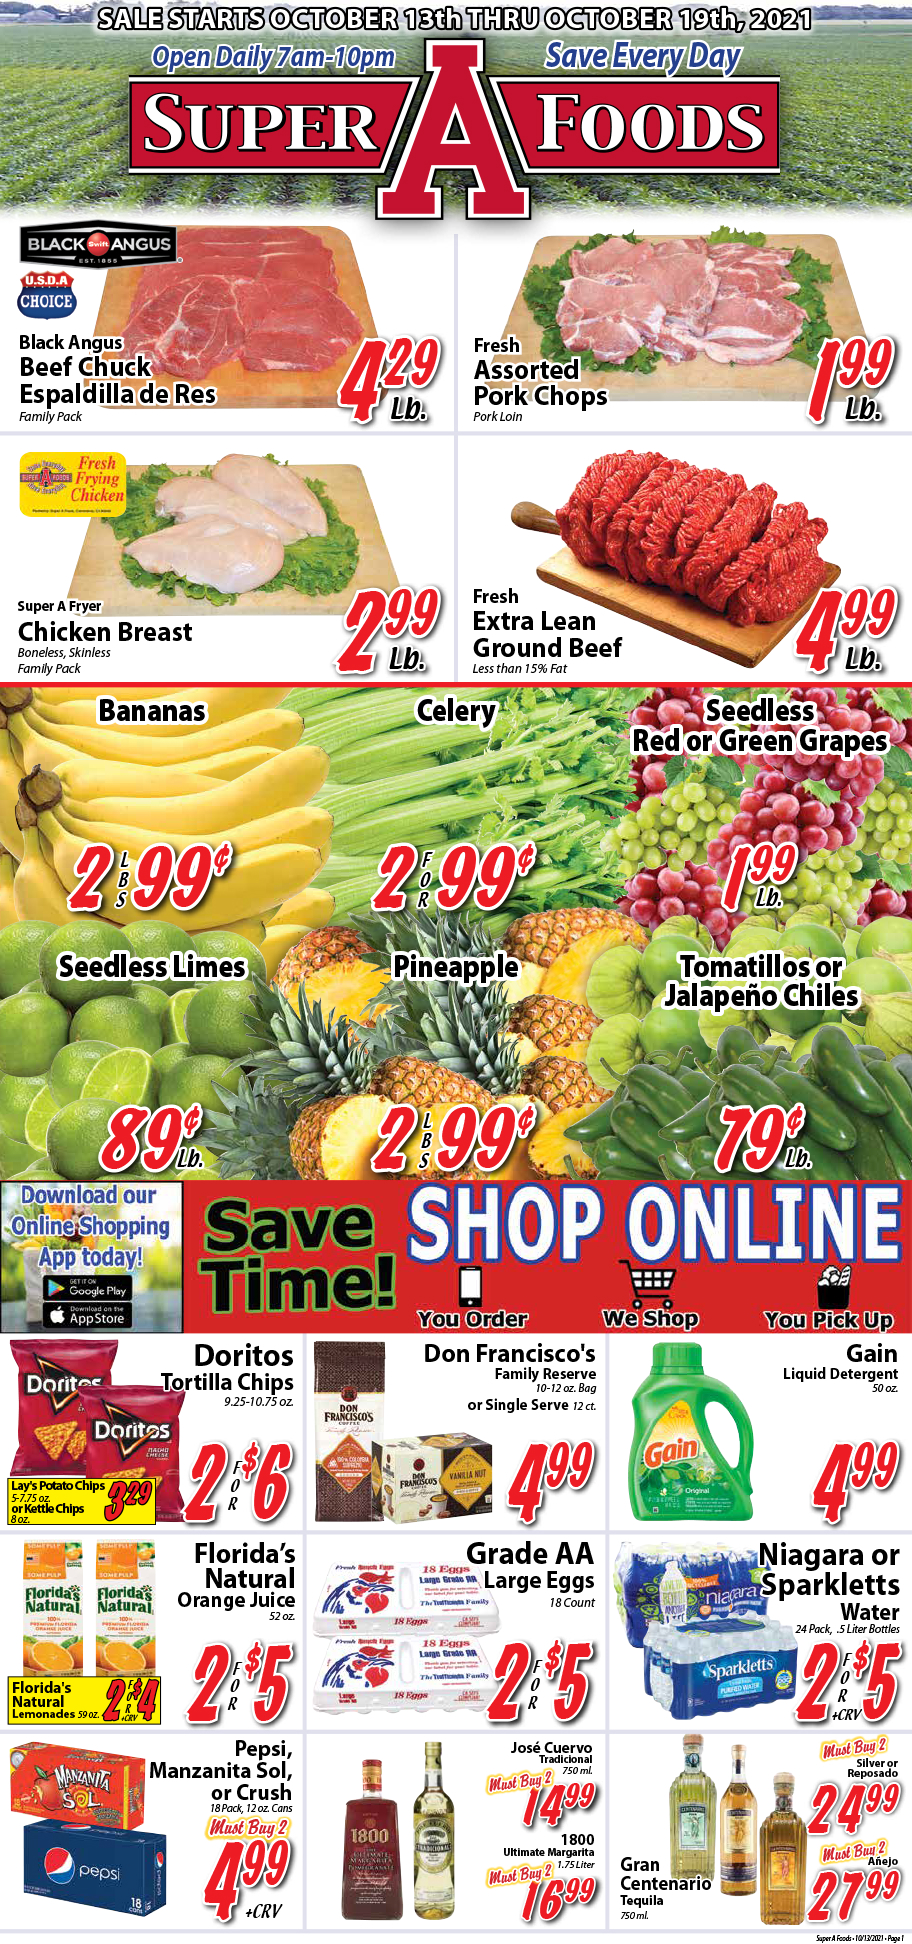 Weekly Ad for October 13 2021